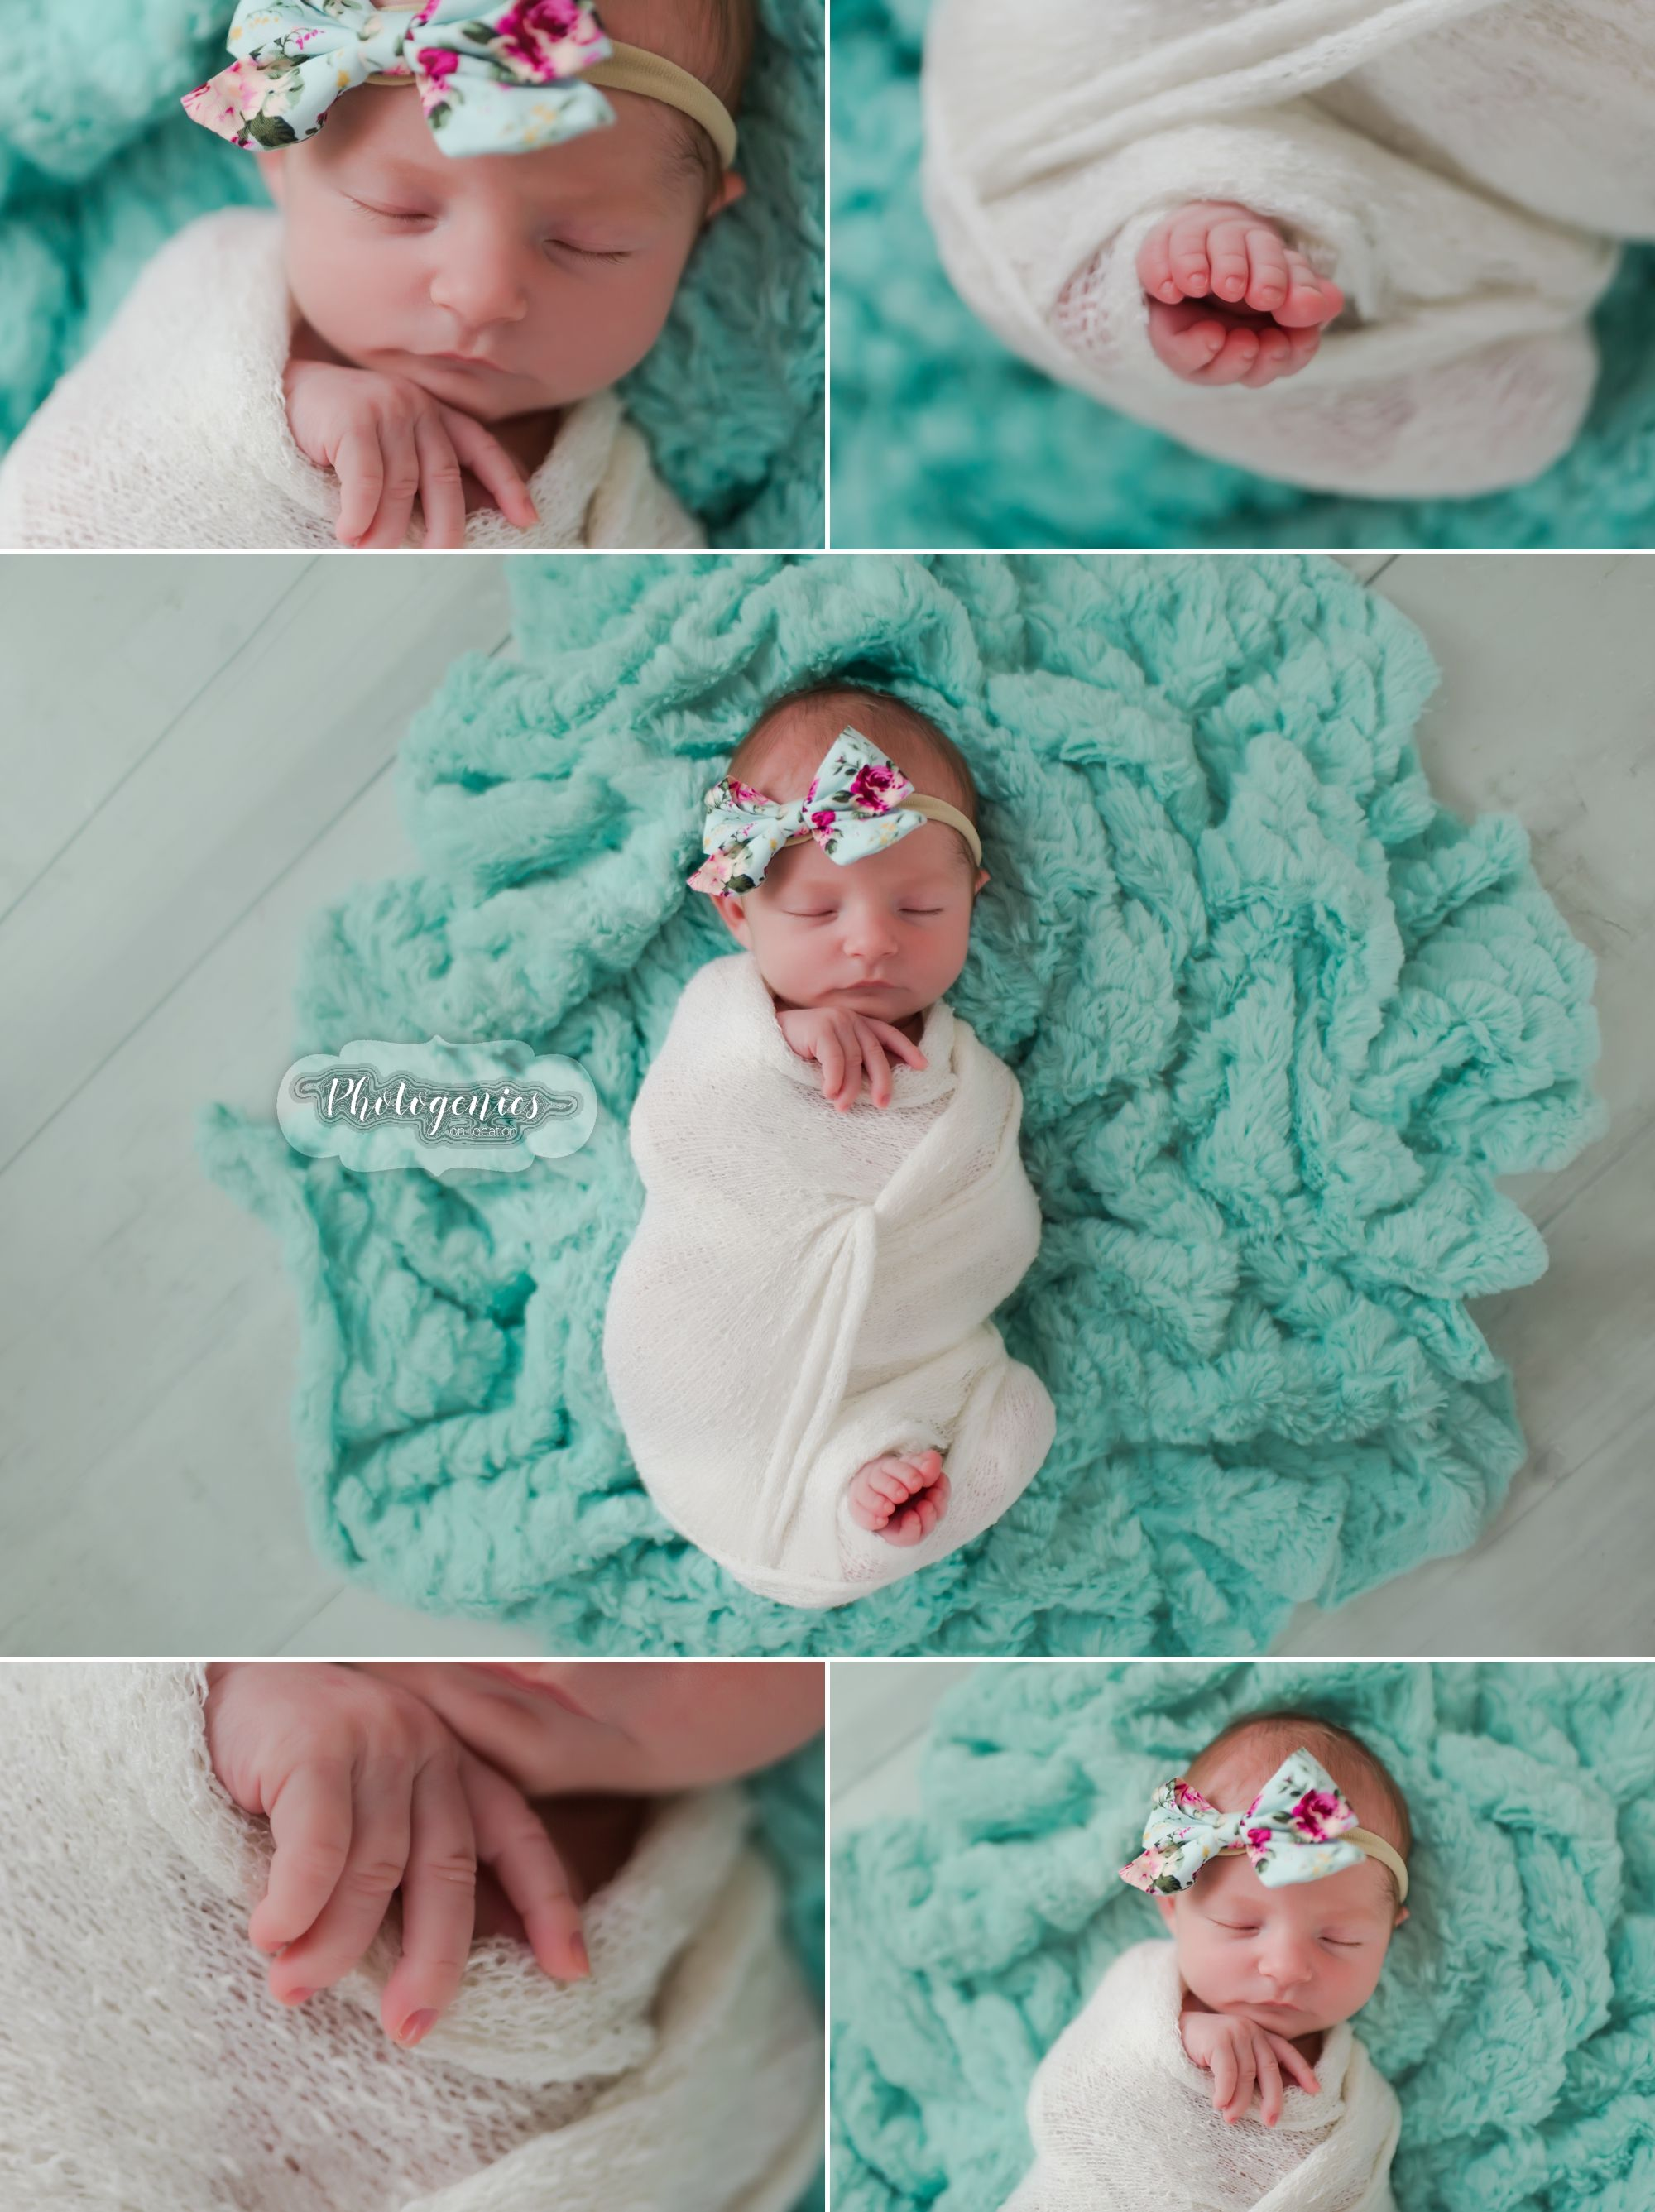 Newborn girl photography unique poses parents studio session florals wraps 1 photography themes girl photography newborn poses newborn session newborn